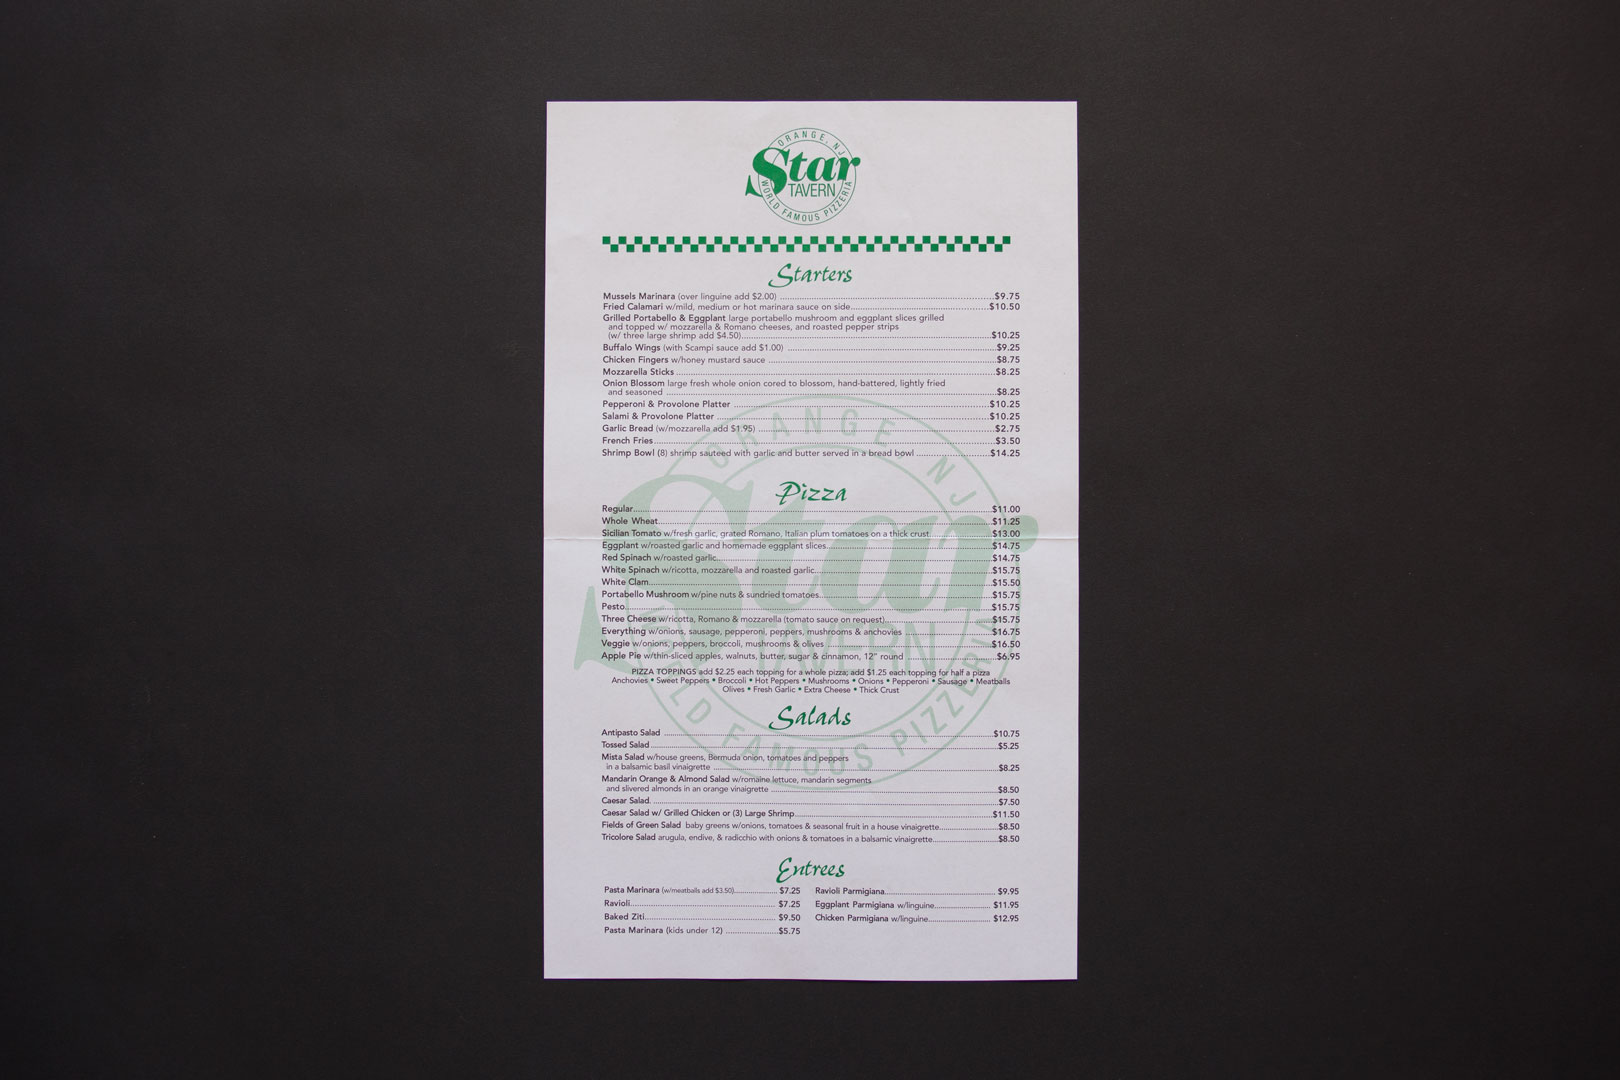 White star tavern menu